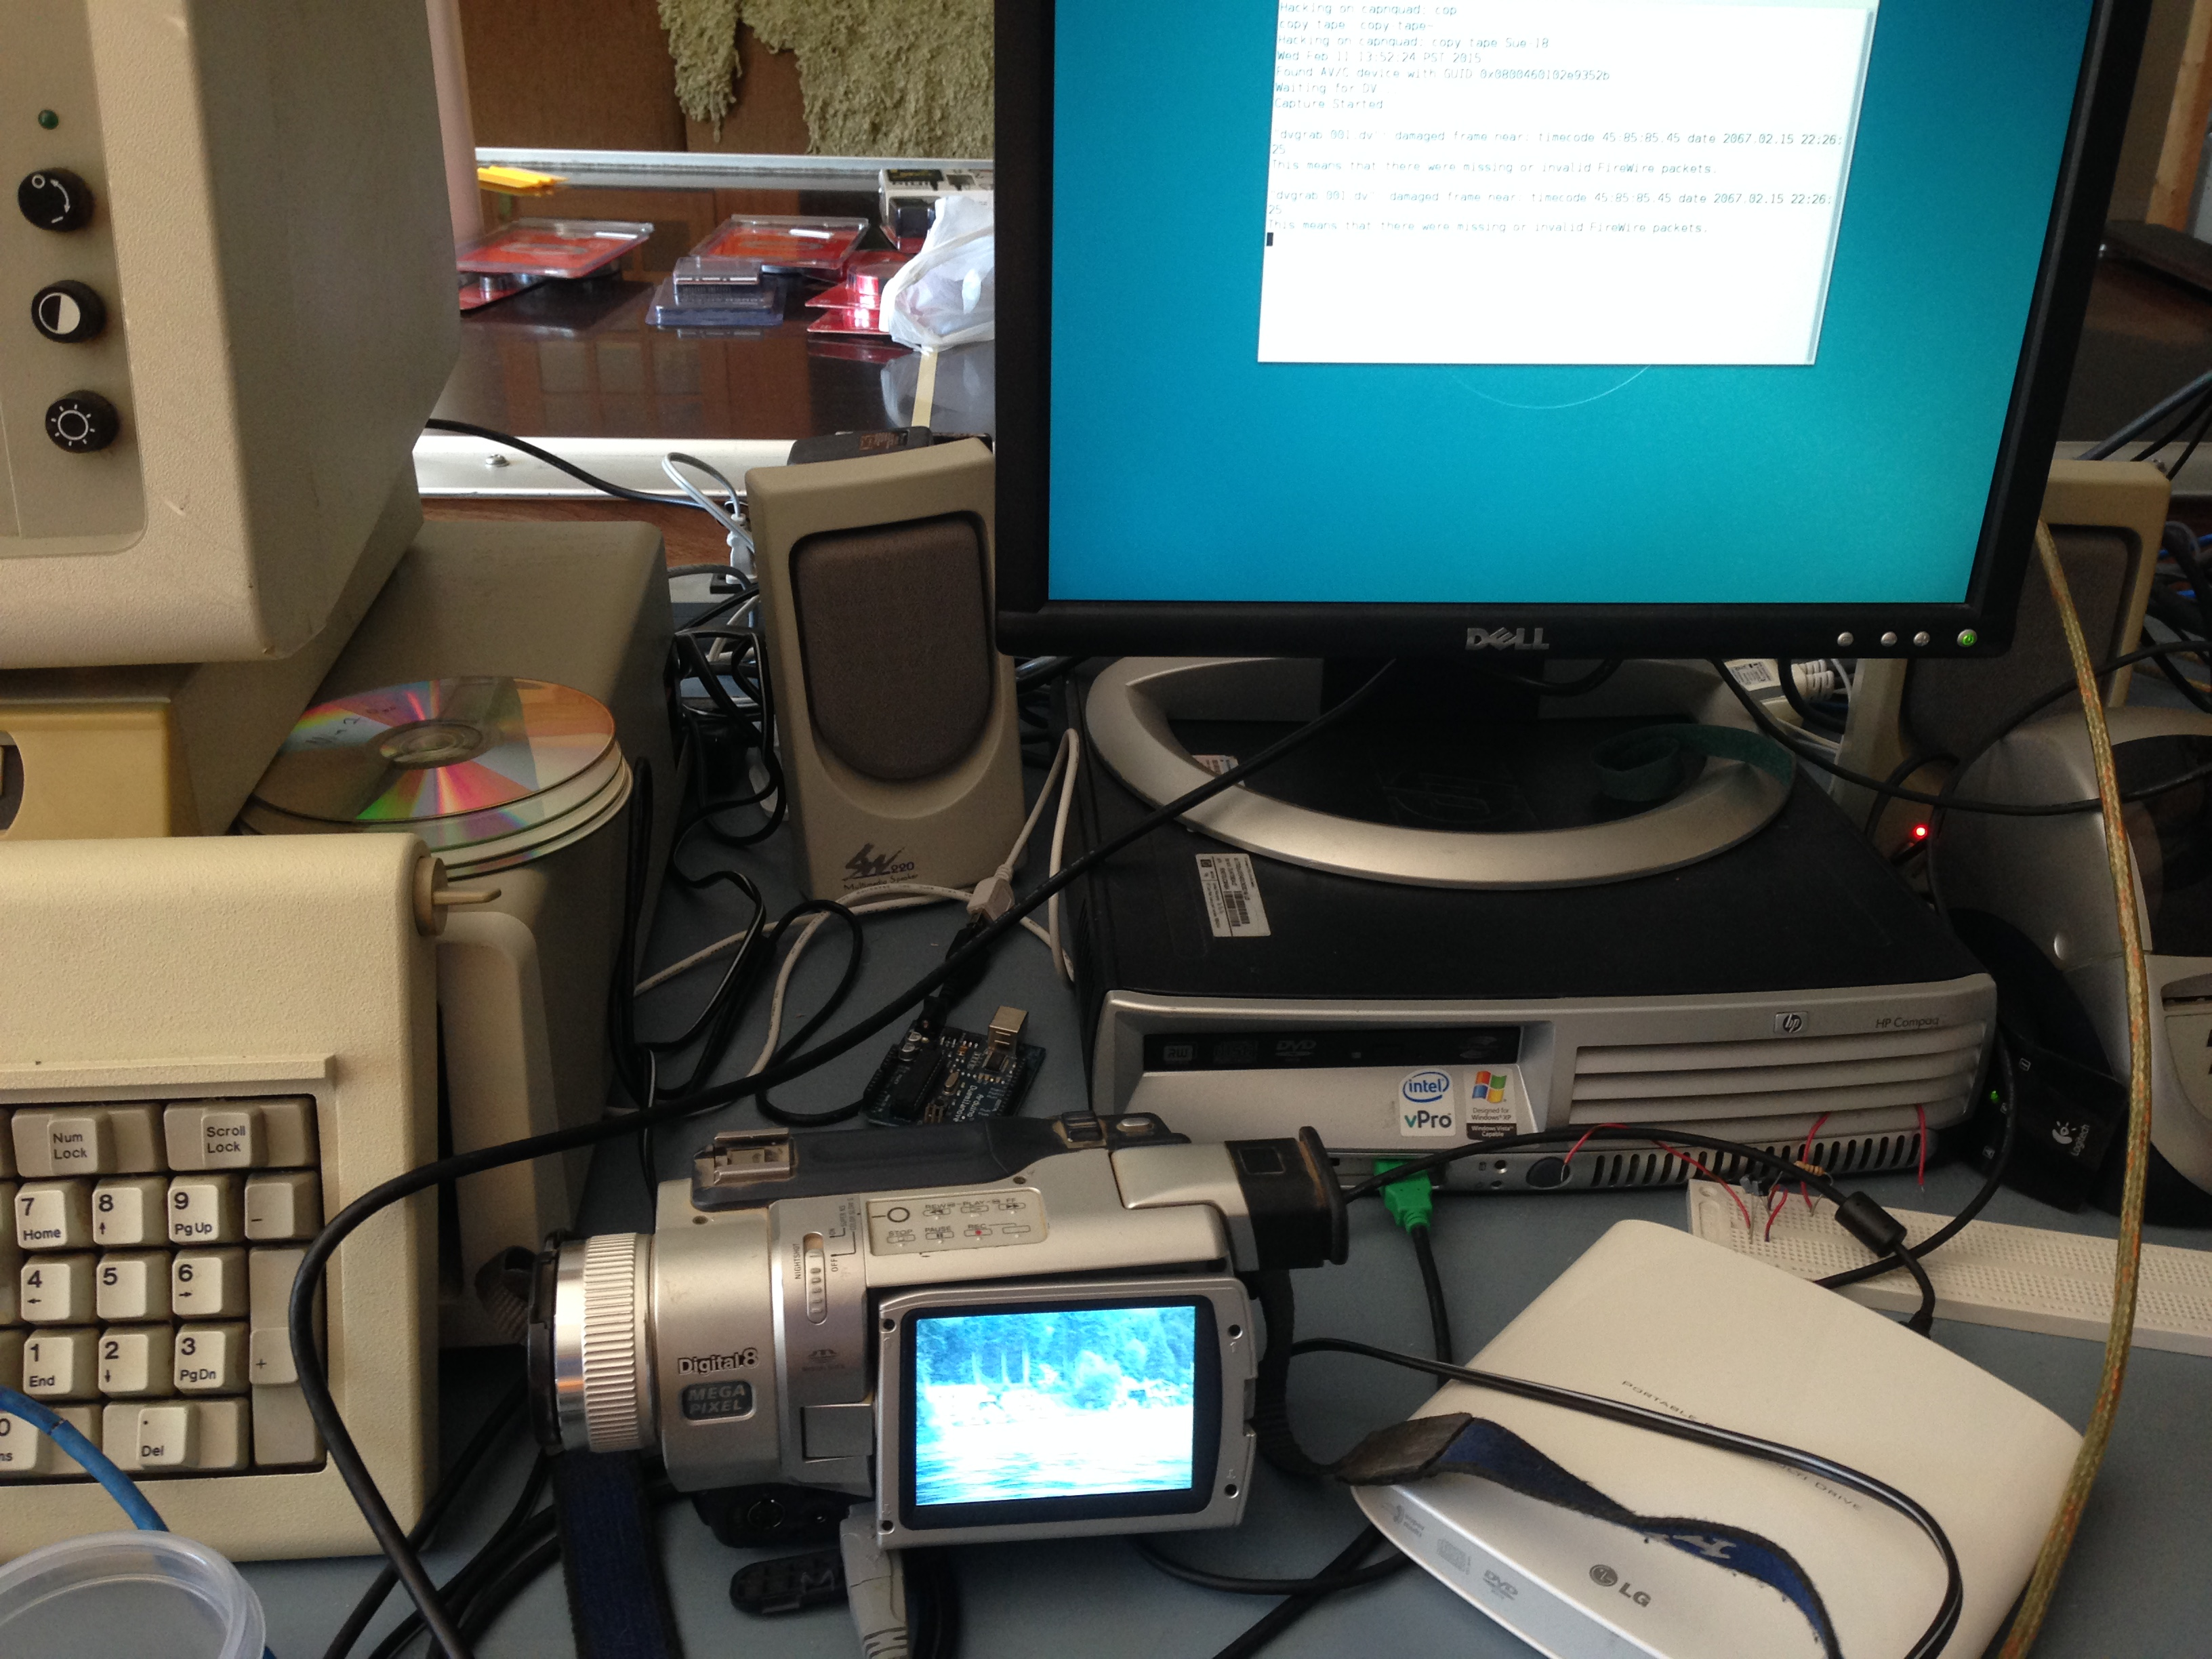 Insentricity :: Processing Digital Video and Digitizing VHS ::